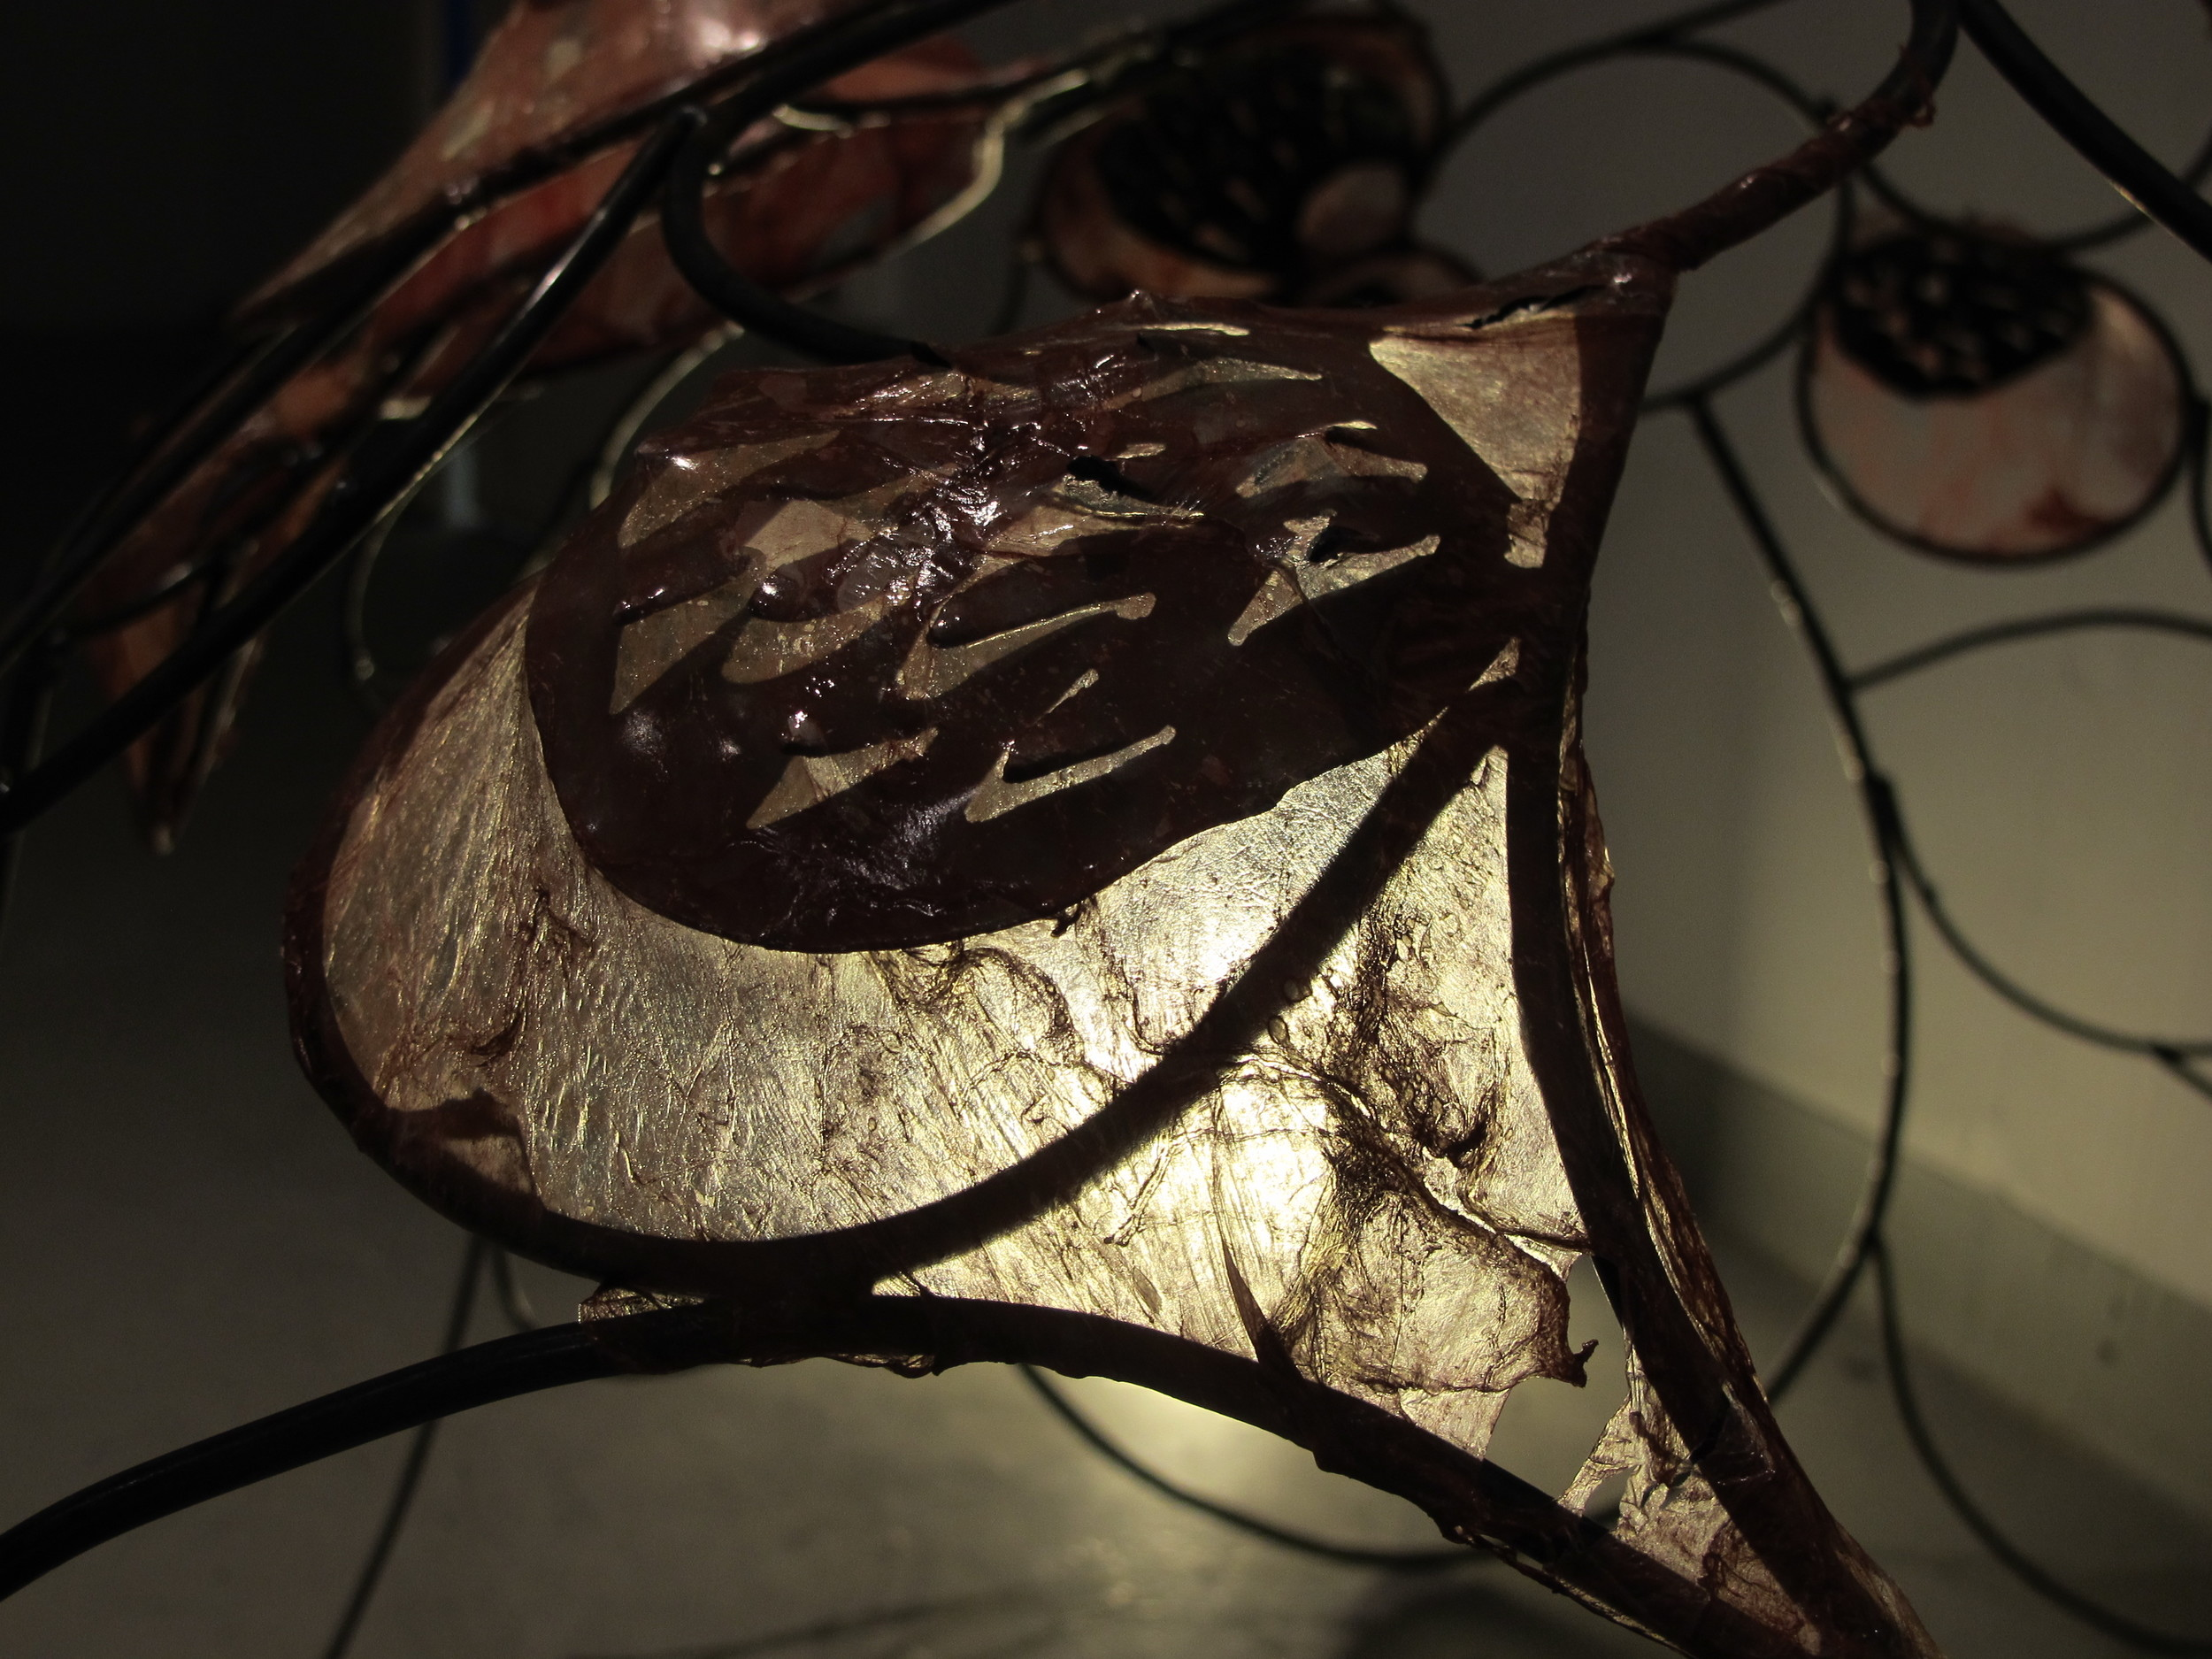 Welded iron and plasma-cut sculpture with pig intestine membrane.